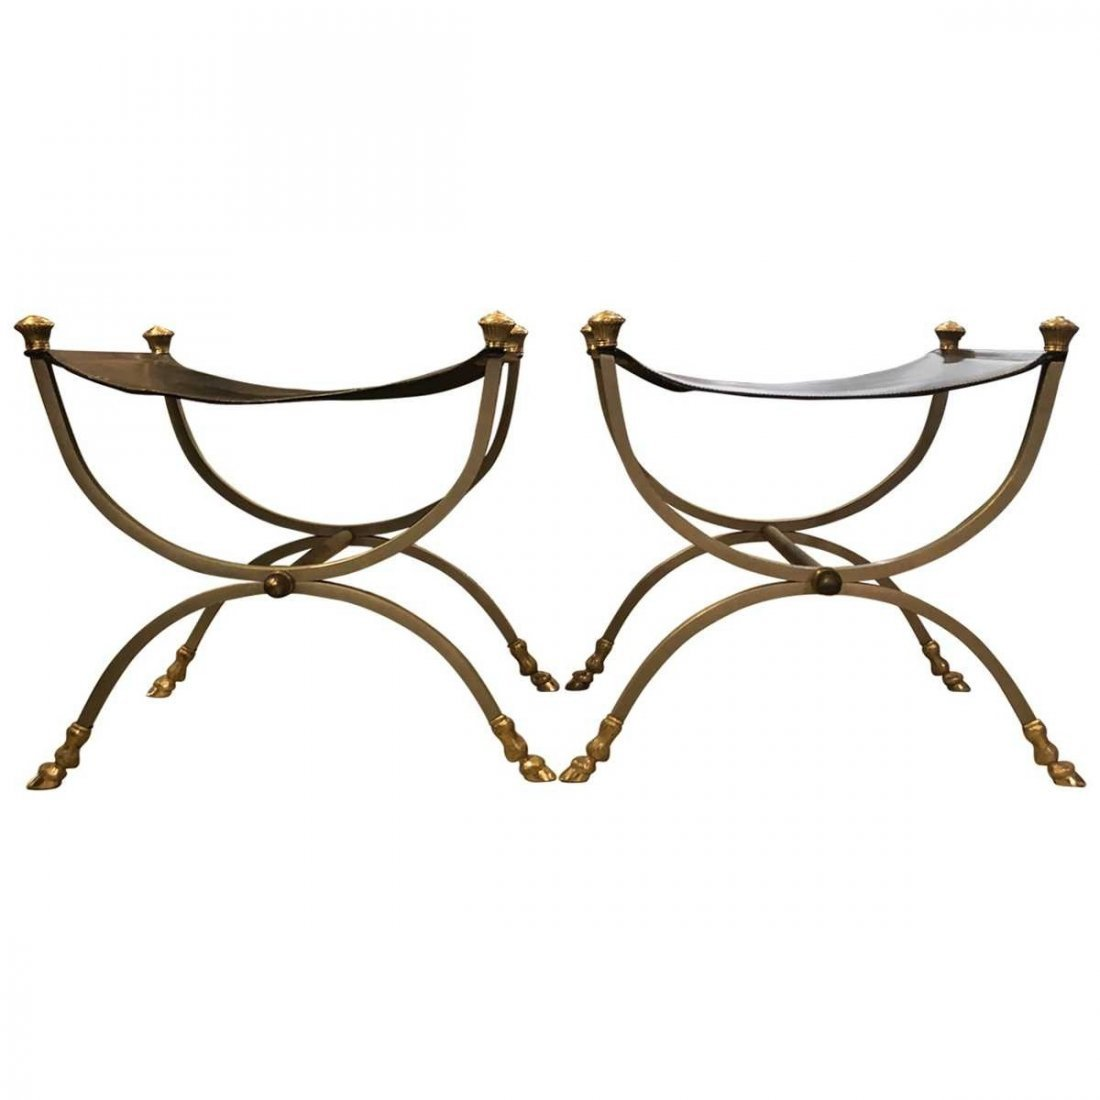 Maison Jansen Pair of Leather and Chrome Stools